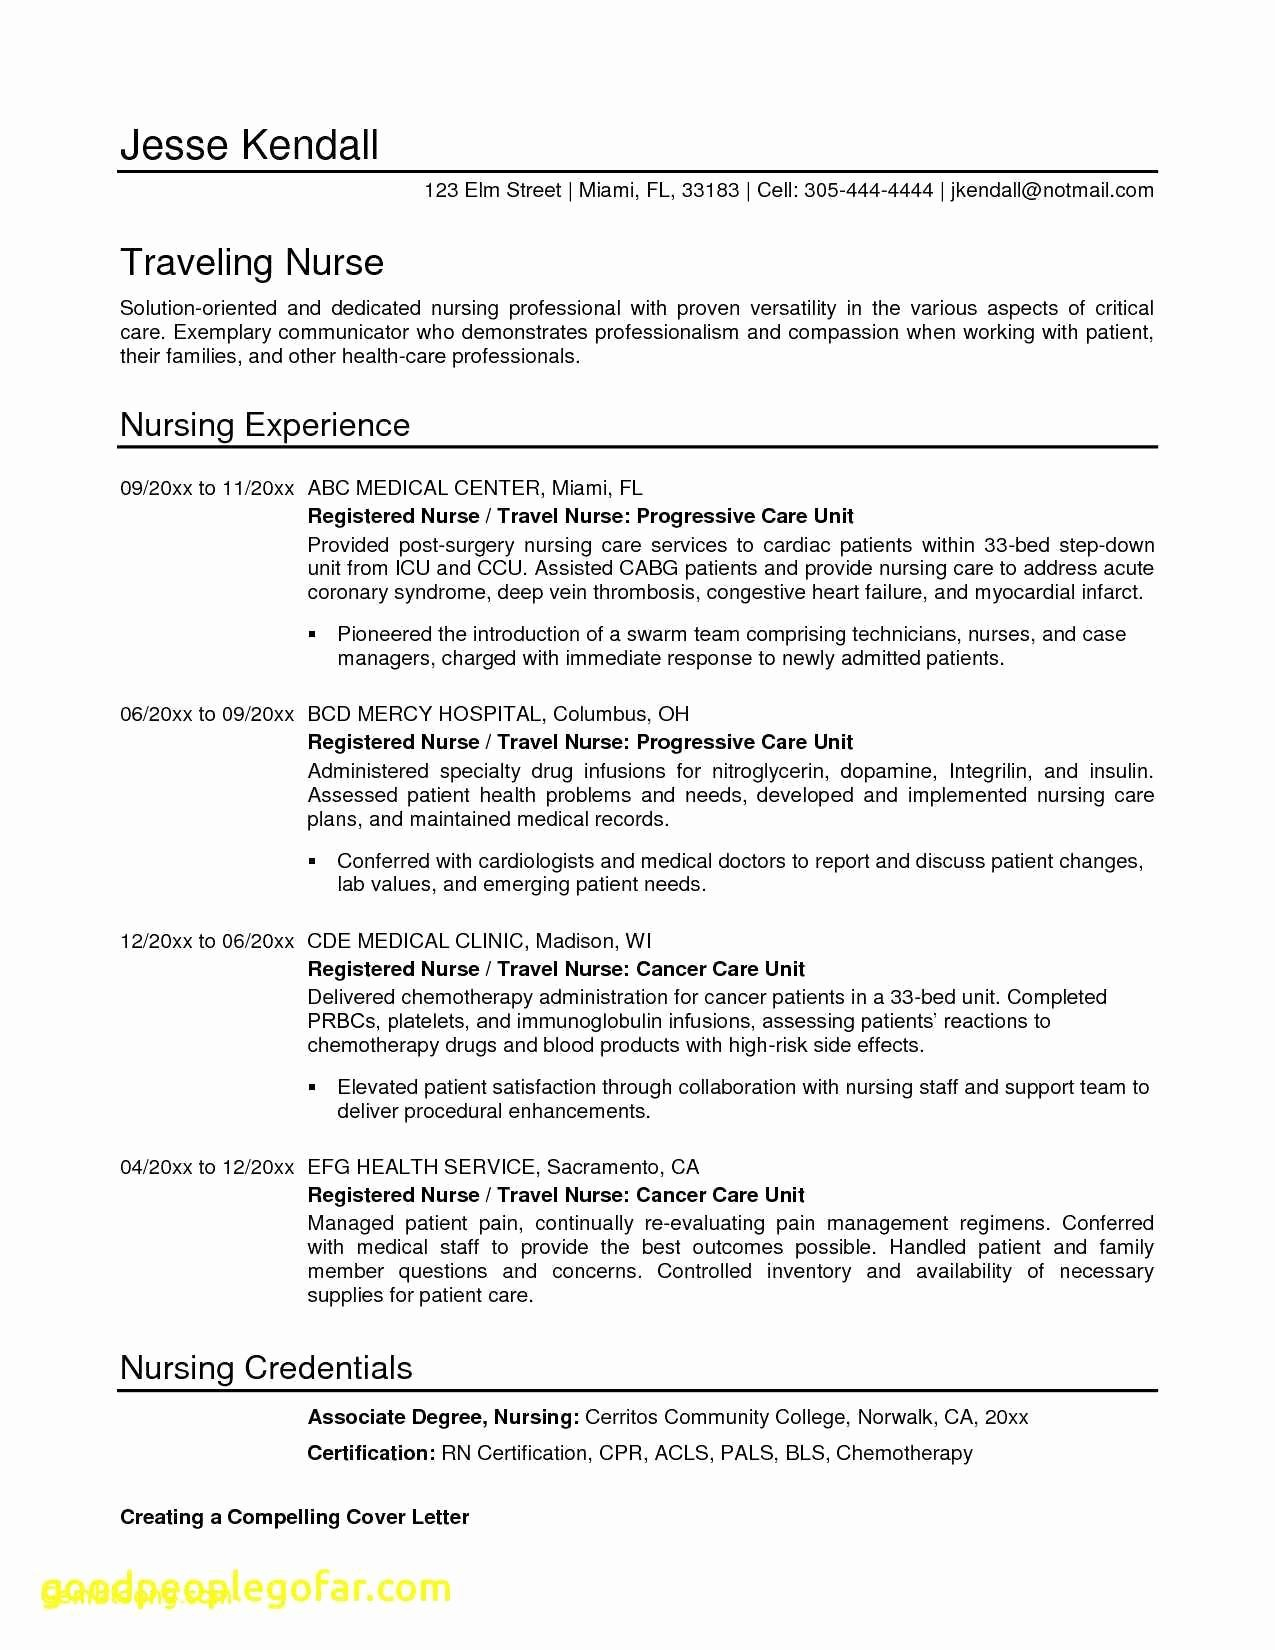 Where to Get A Resume Done Professionally - 24 Model Professional Resume